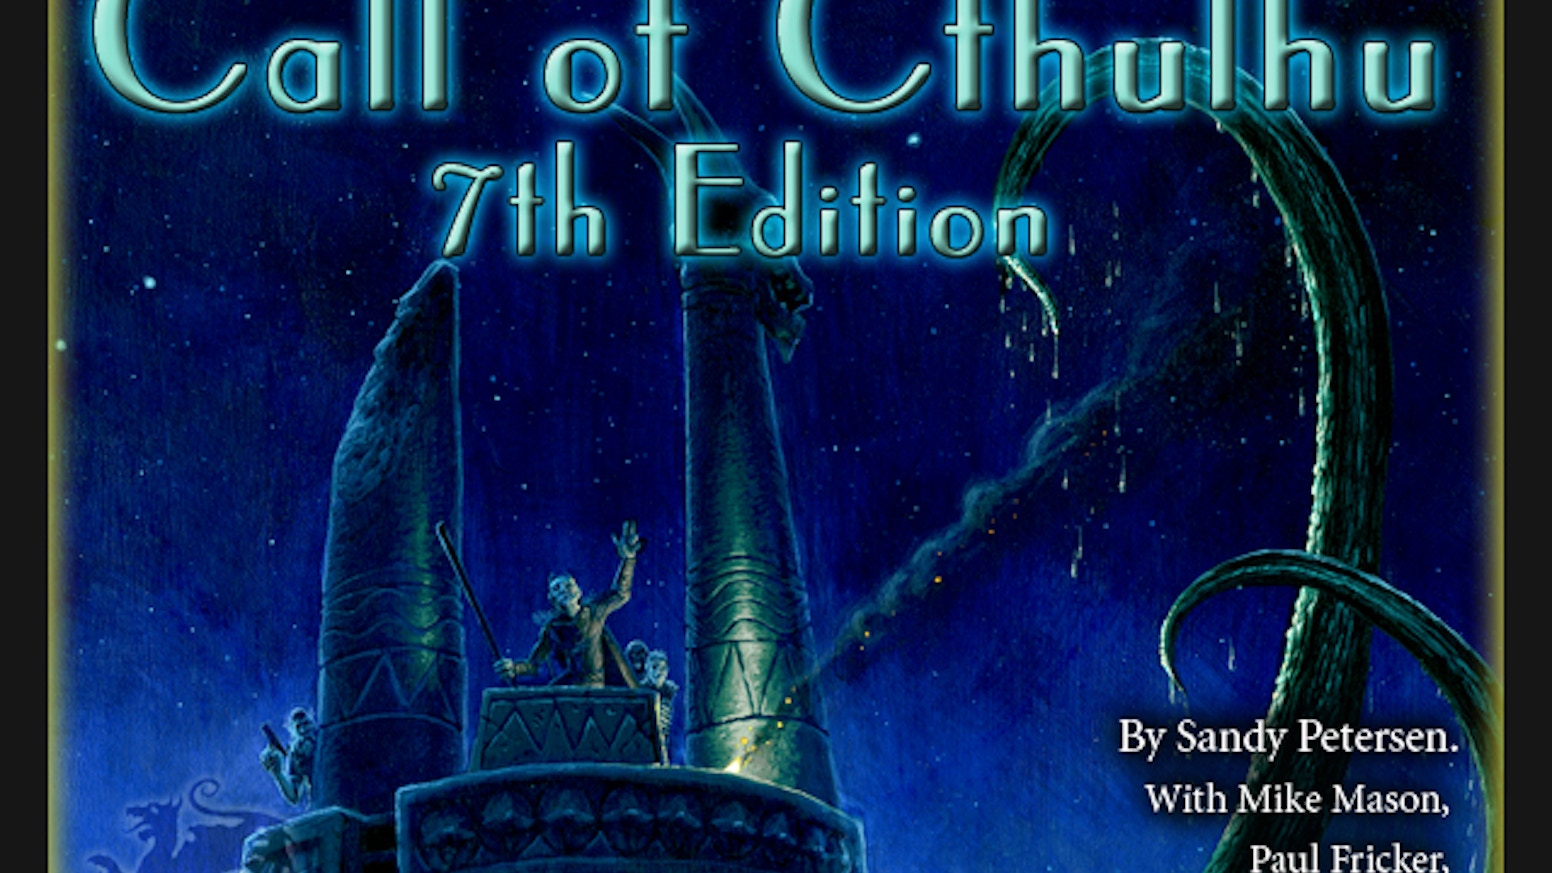 Call of Cthulhu is an award-winning roleplaying game, first published in 1981. The 7th Edition will have updated rules and new content.